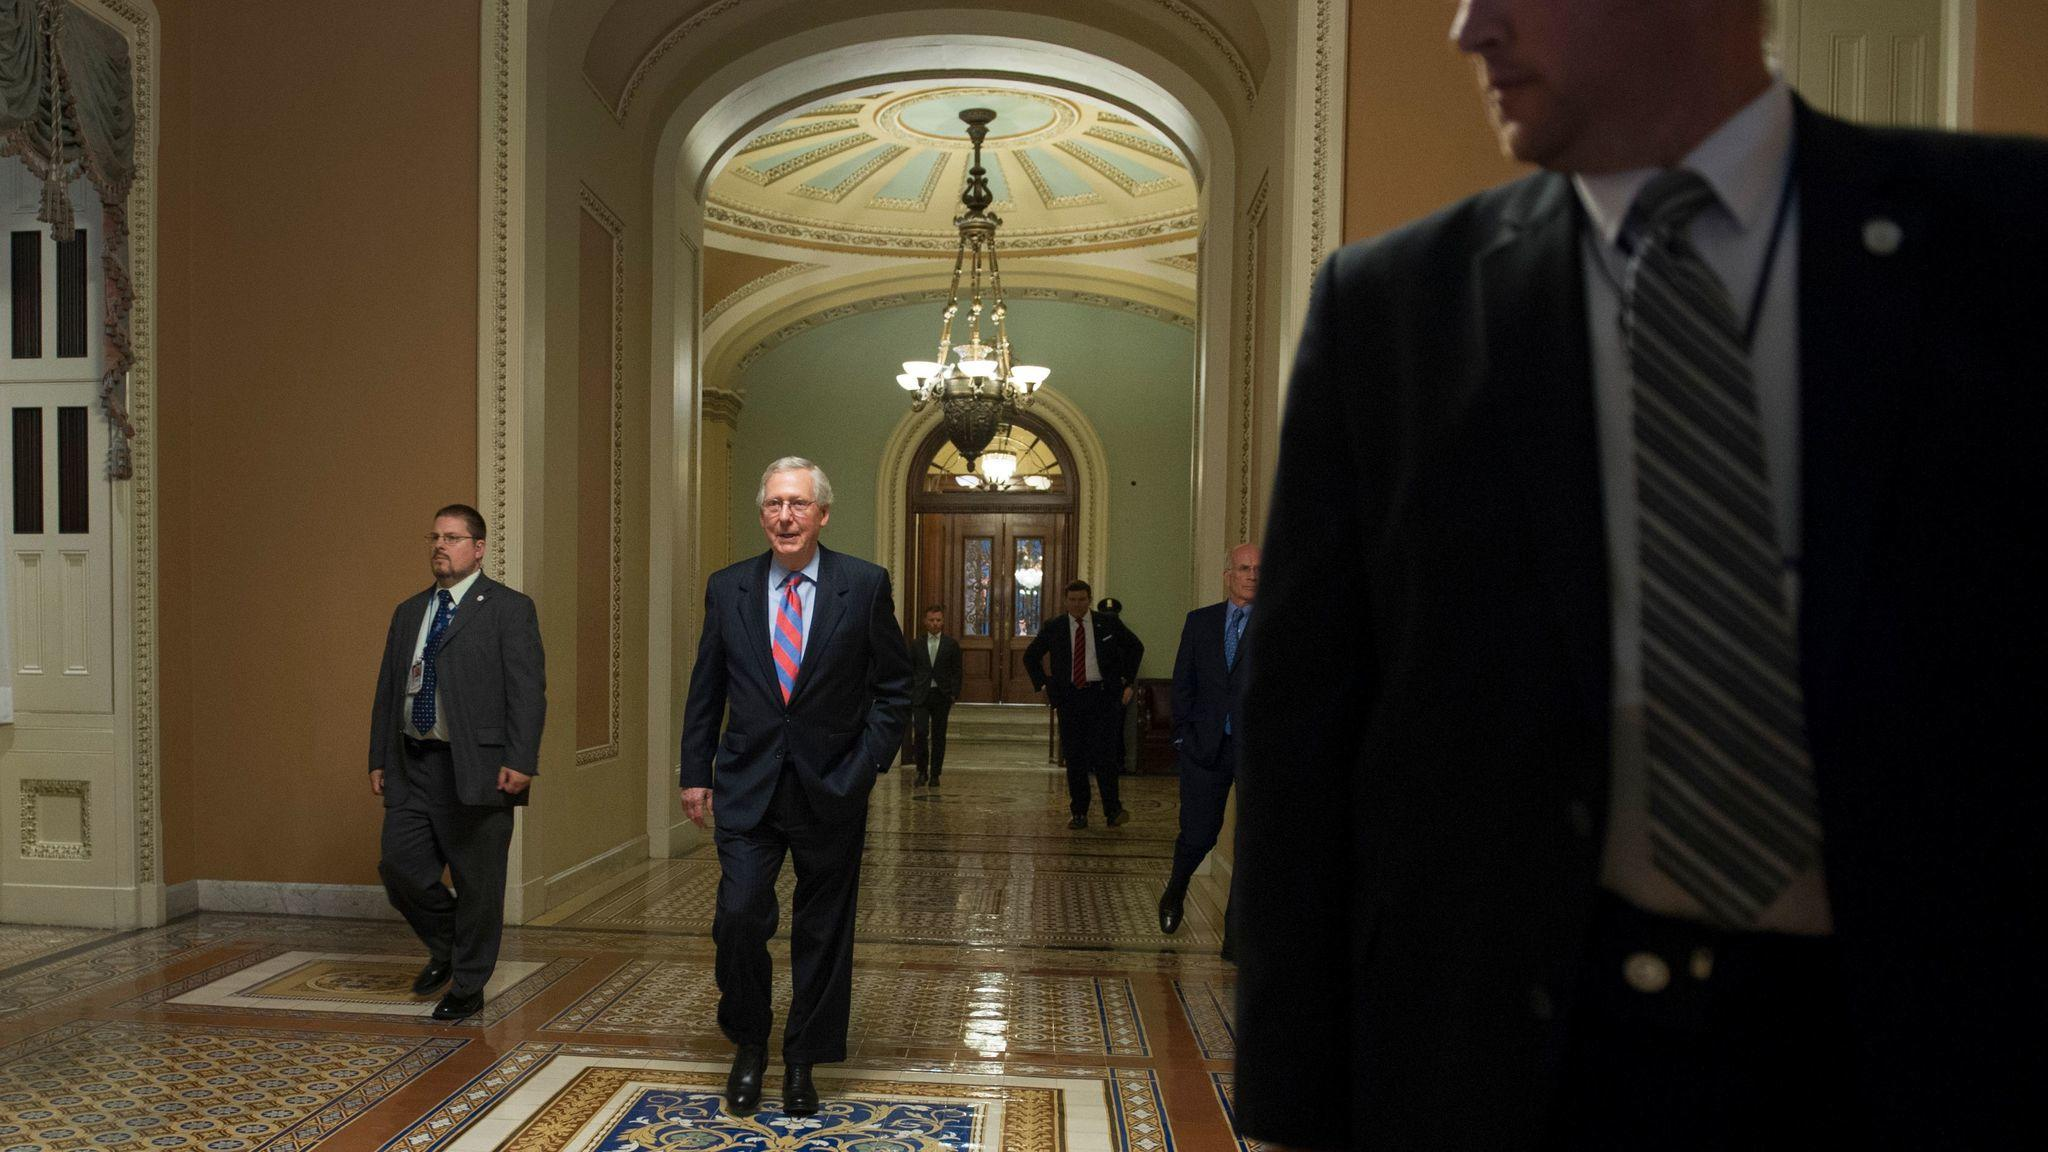 Senate Majority Leader Mitch McConnell in the Capitol. (Associated Press)